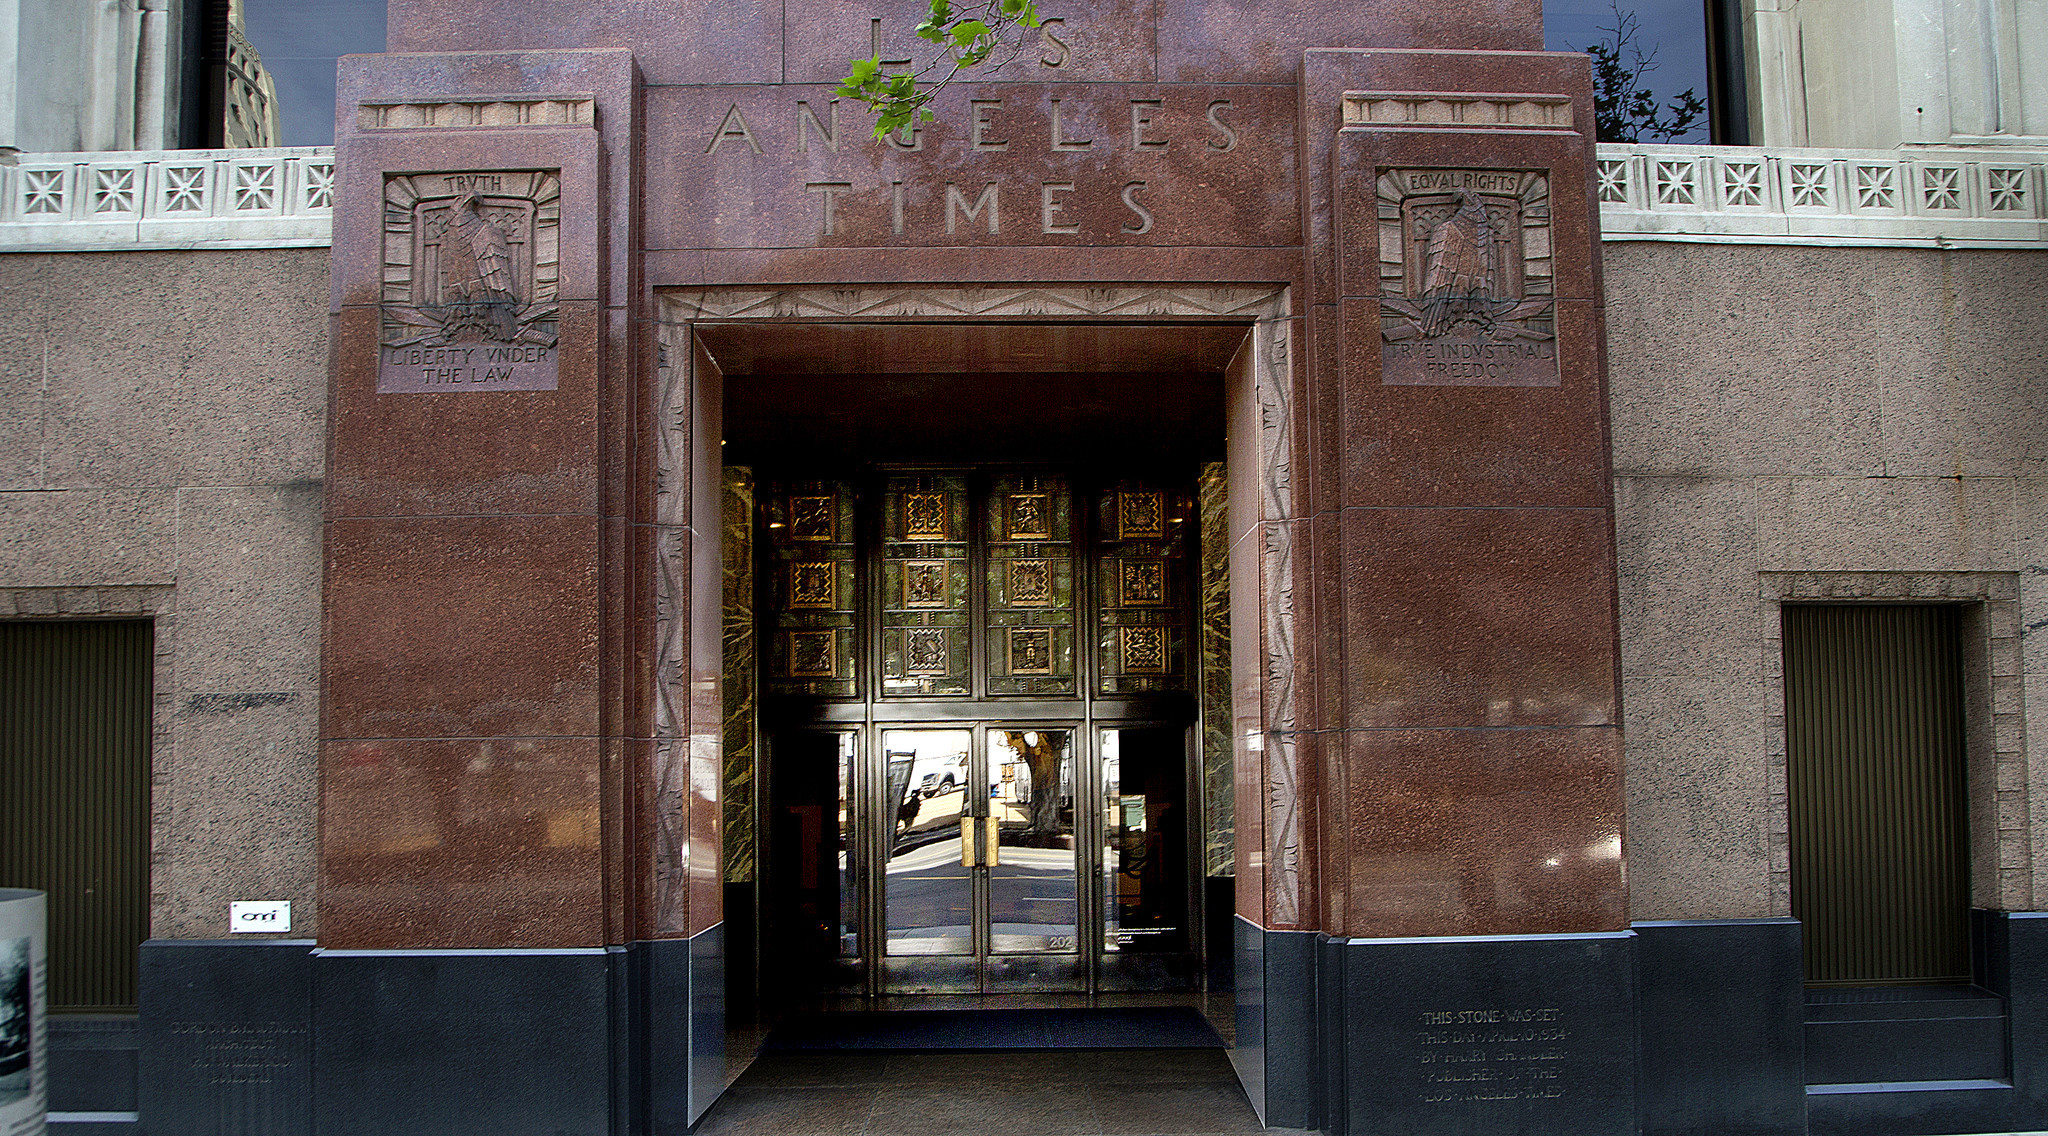 LOS ANGELES, CA., JULY 6, 2018--The Los Angeles Times Building is an art deco building in Times Mirr